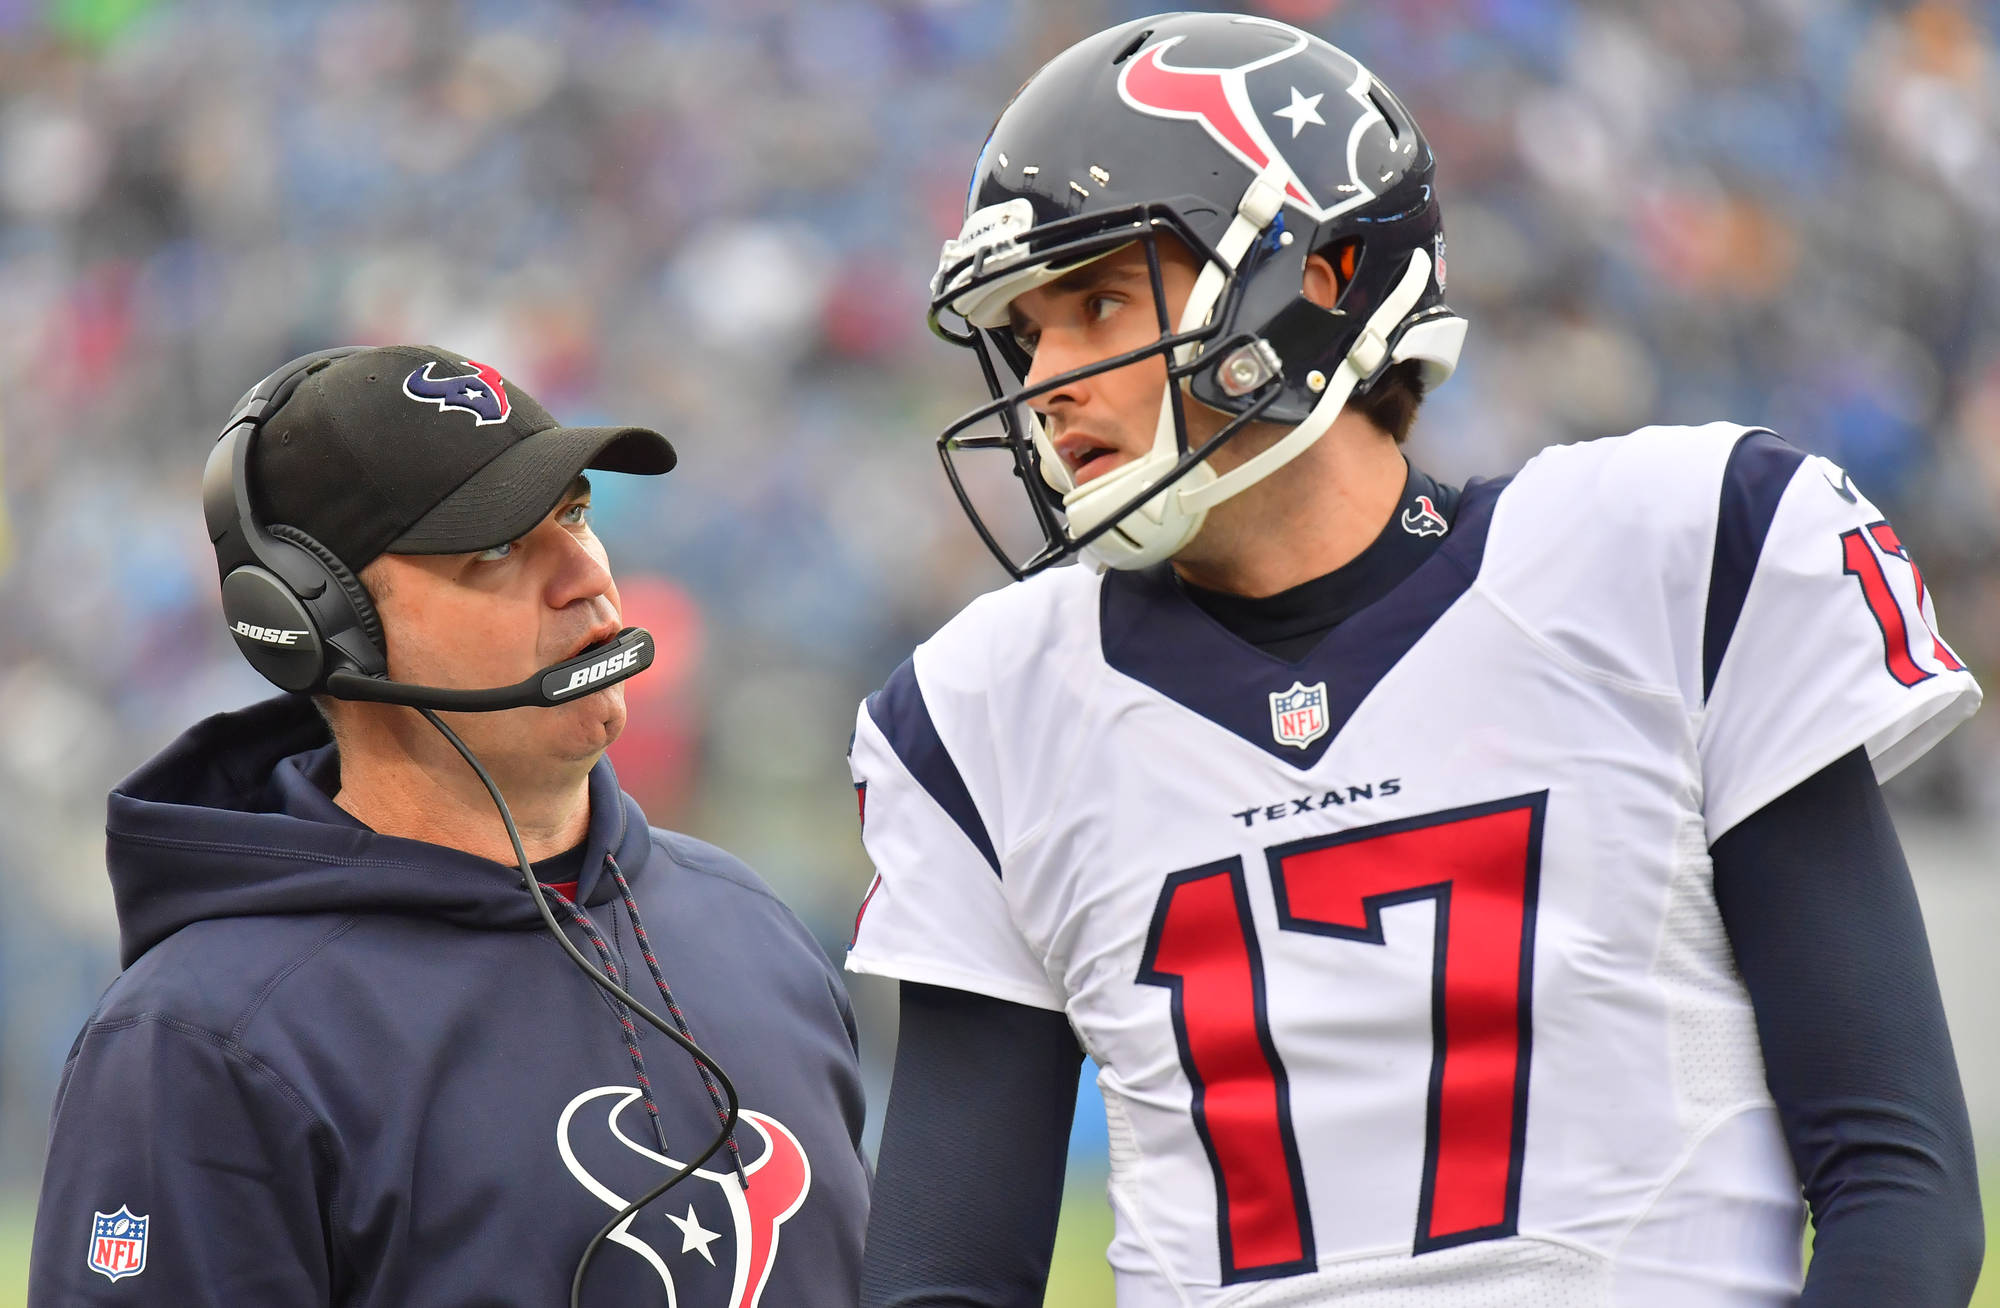 Brock Osweiler Looks to Take Down Patriots Yet Again